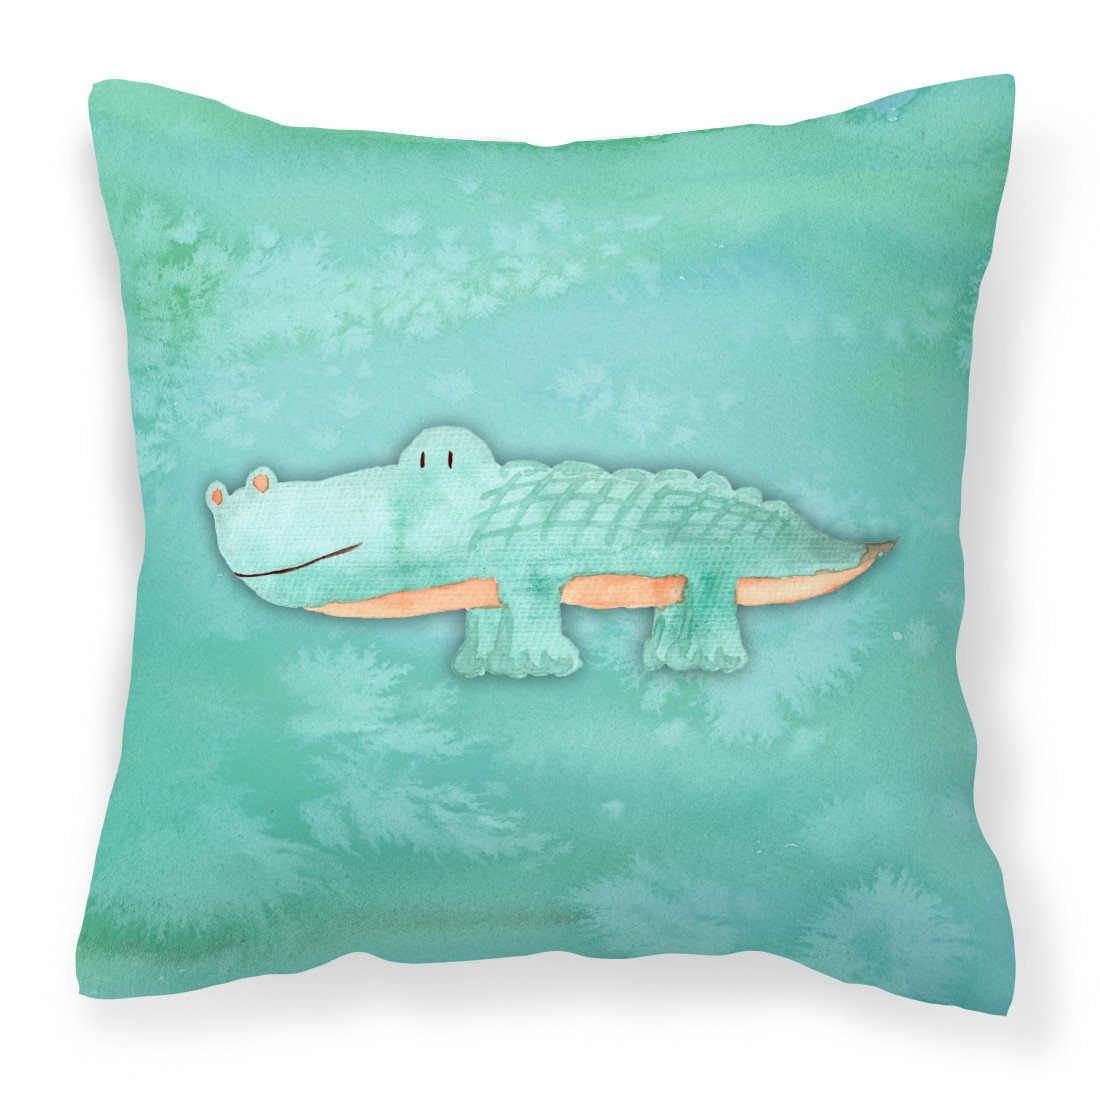 Buy this Alligator Watercolor Fabric Decorative Pillow BB7385PW1818